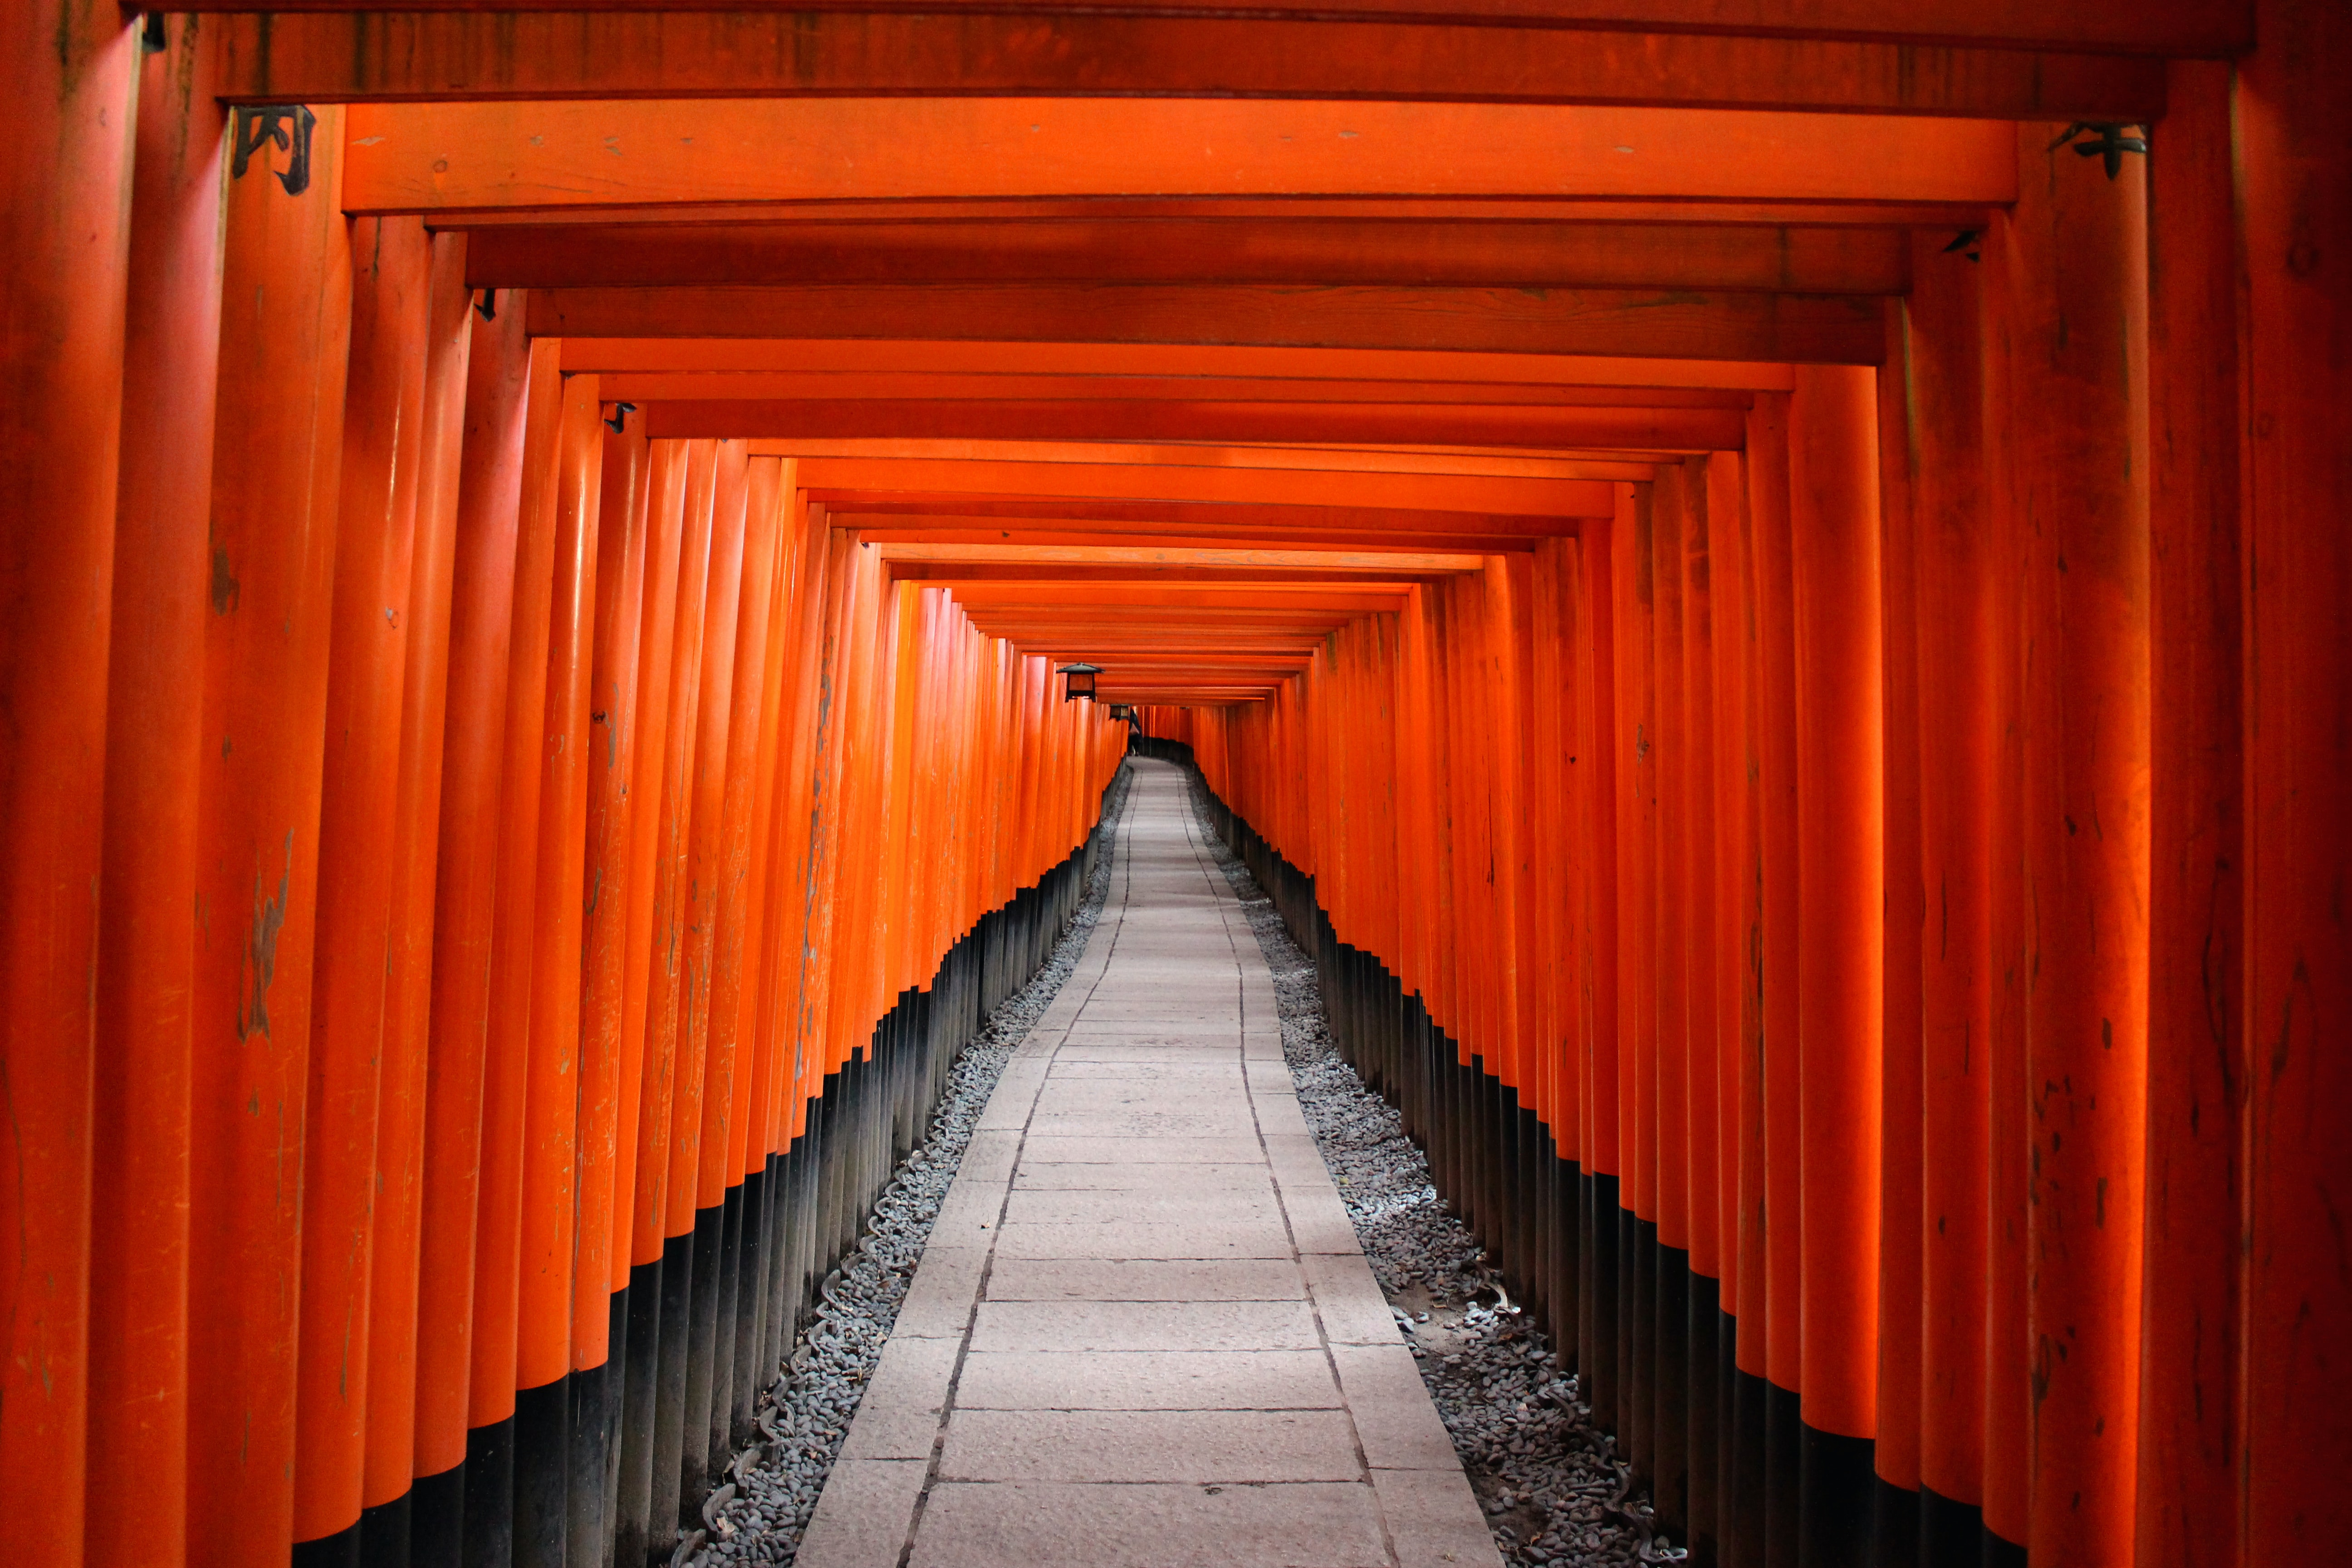 Orange architecture in a hallway that leads to Kyoto Prefecture temple